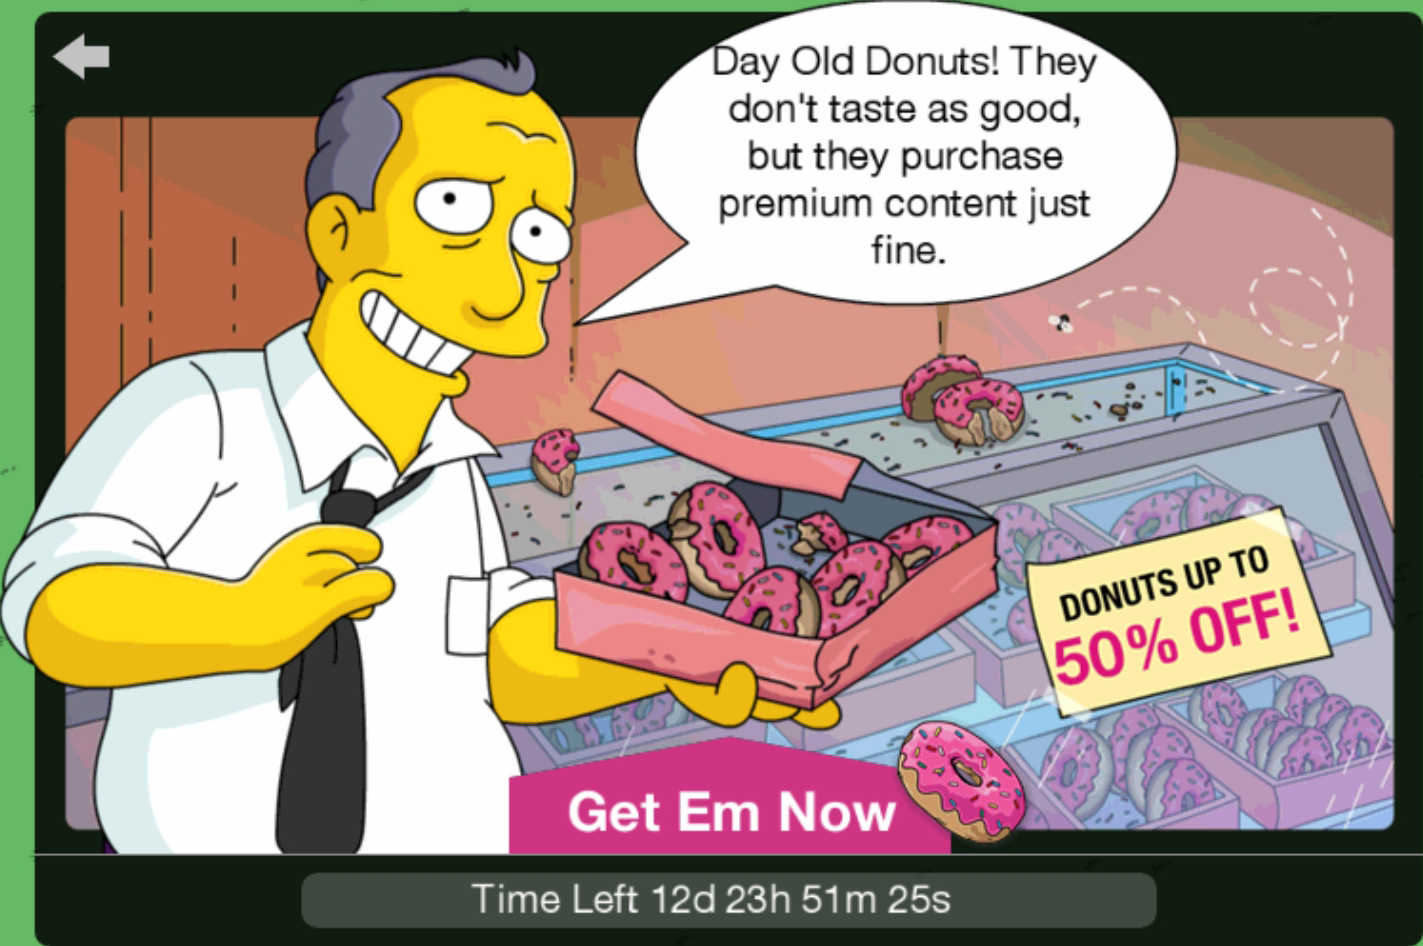 Day Old Donut 50% Offer.png